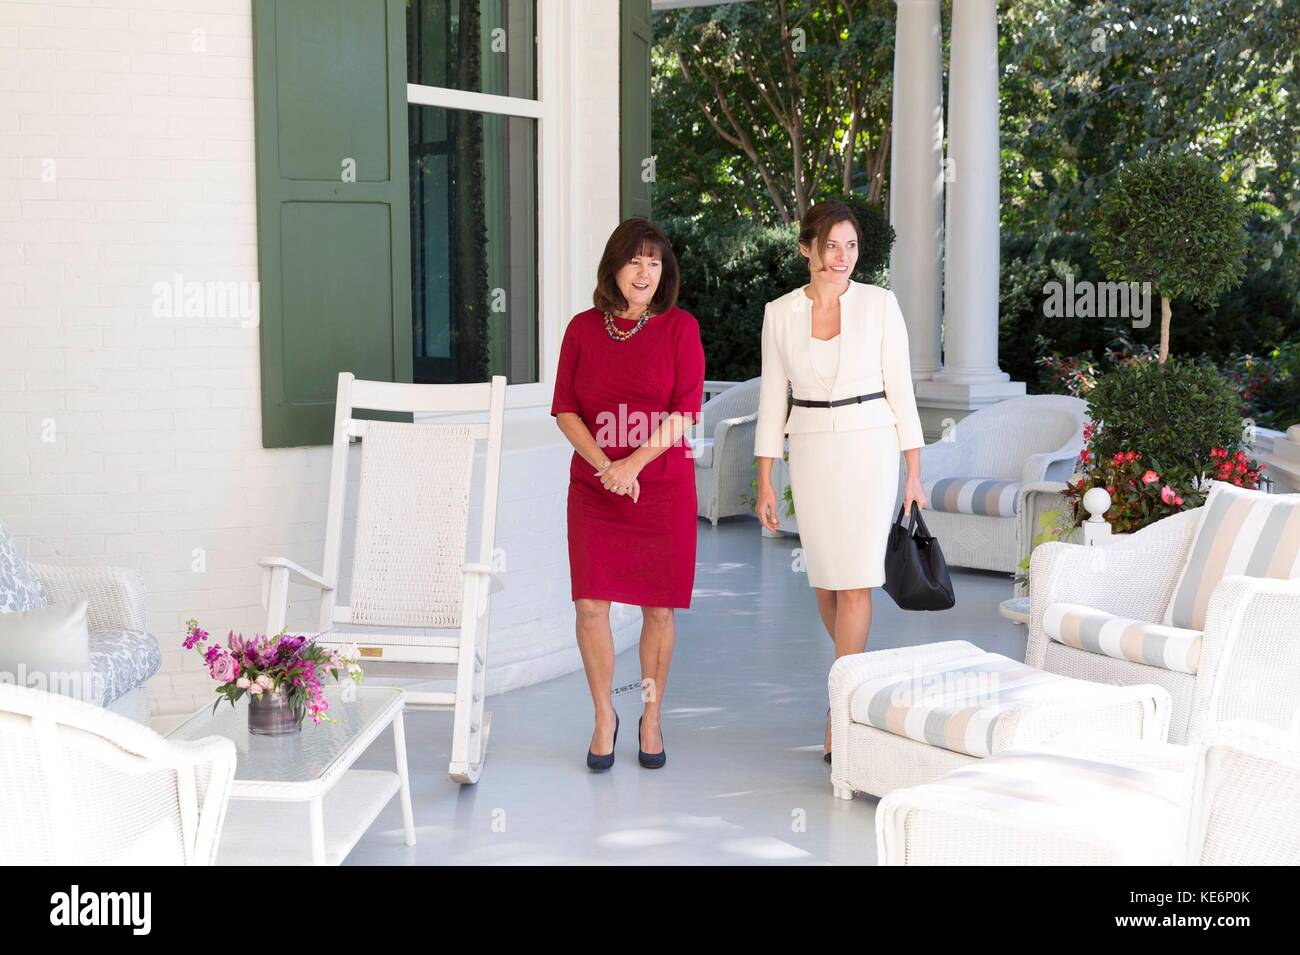 Karen Pence, left, wife of U.S. Vice President Mike Pence, walks with Dr. Betty Baizana, wife of Greek Prime Minister - Stock Image